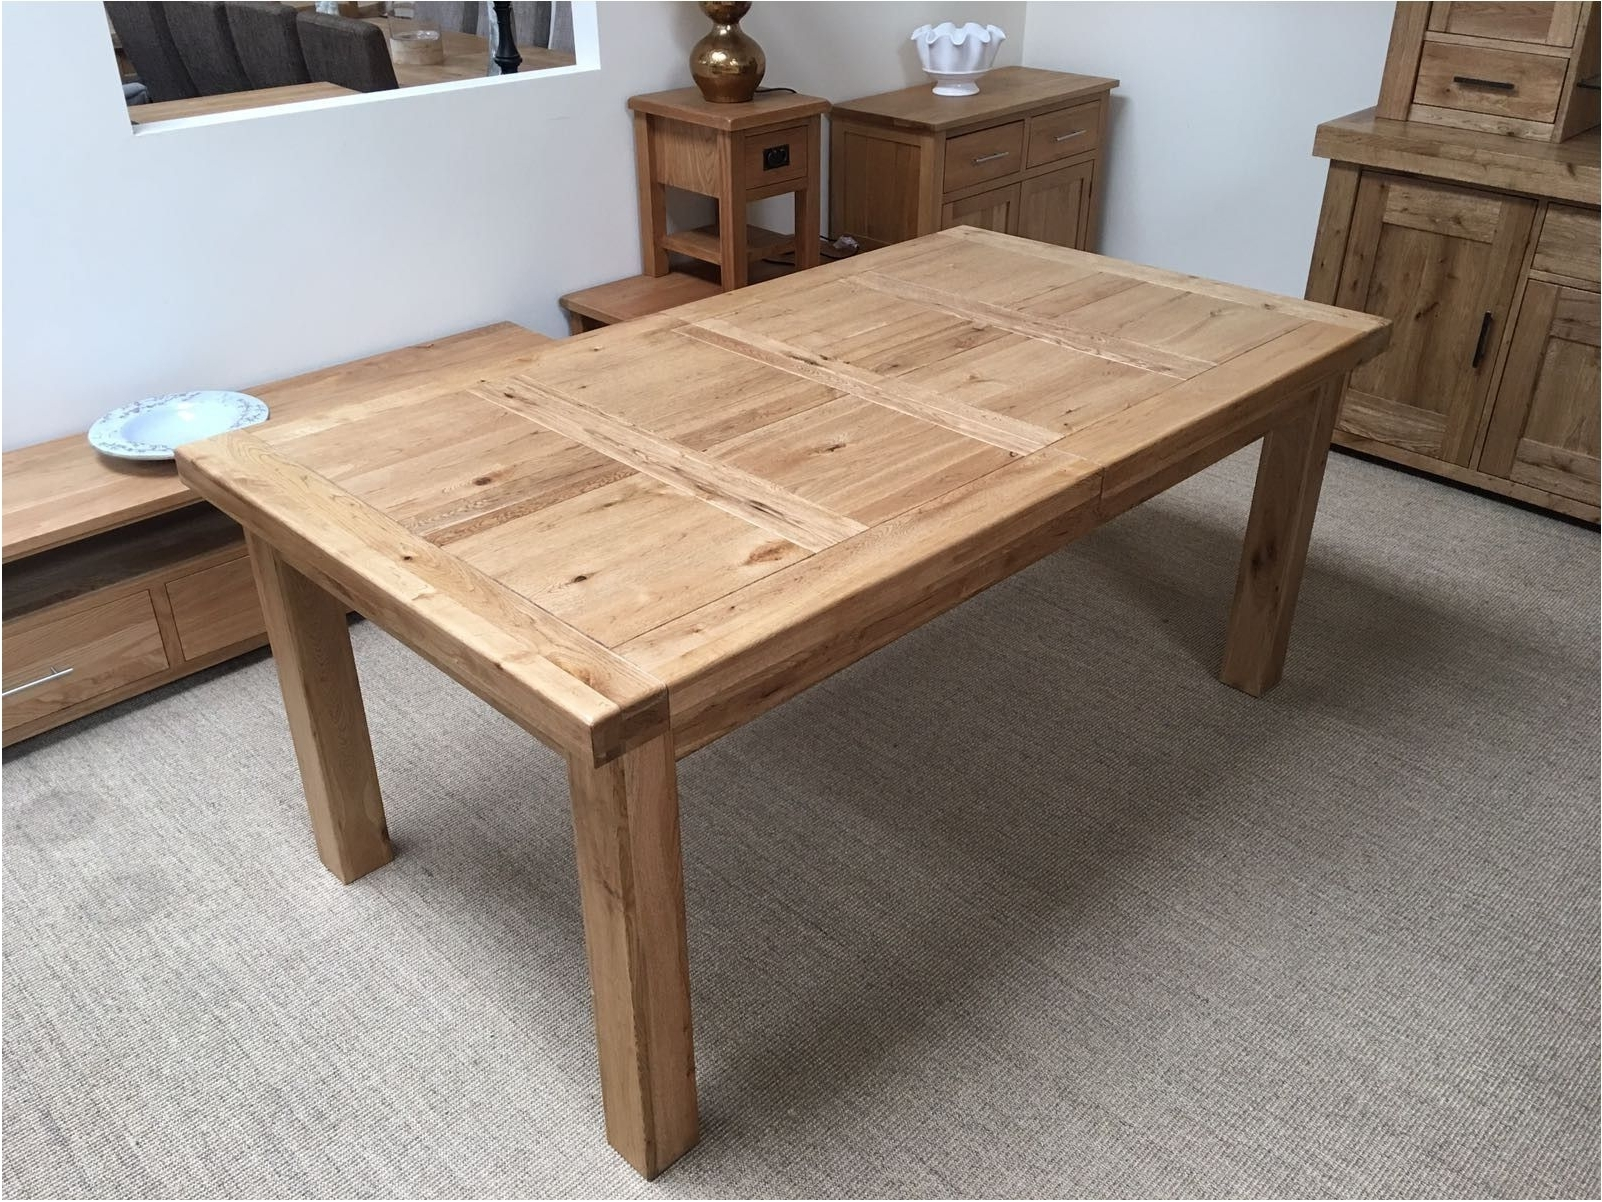 Astounding Oxford Solid Oak Extending Dining Table Oak Furniture With Regard To Fashionable Round Oak Extendable Dining Tables And Chairs (View 3 of 25)